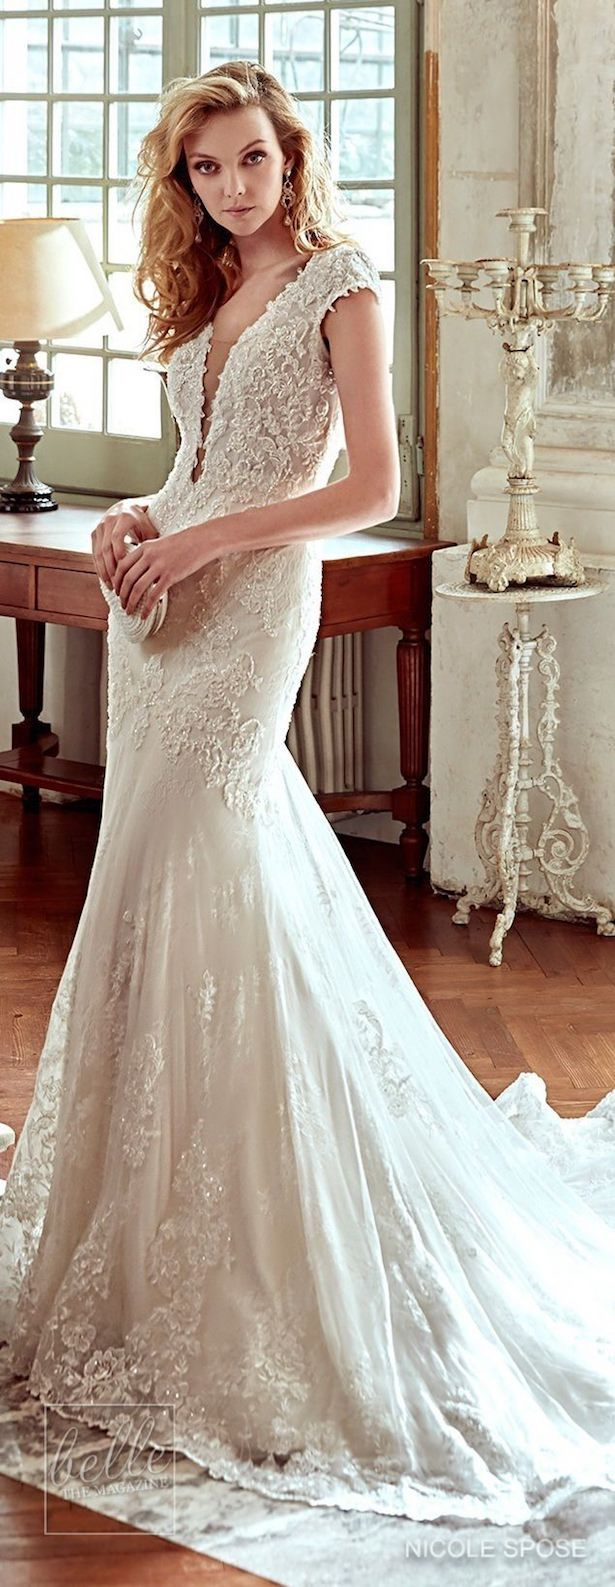 Nicole spose wedding dress collection part i dress